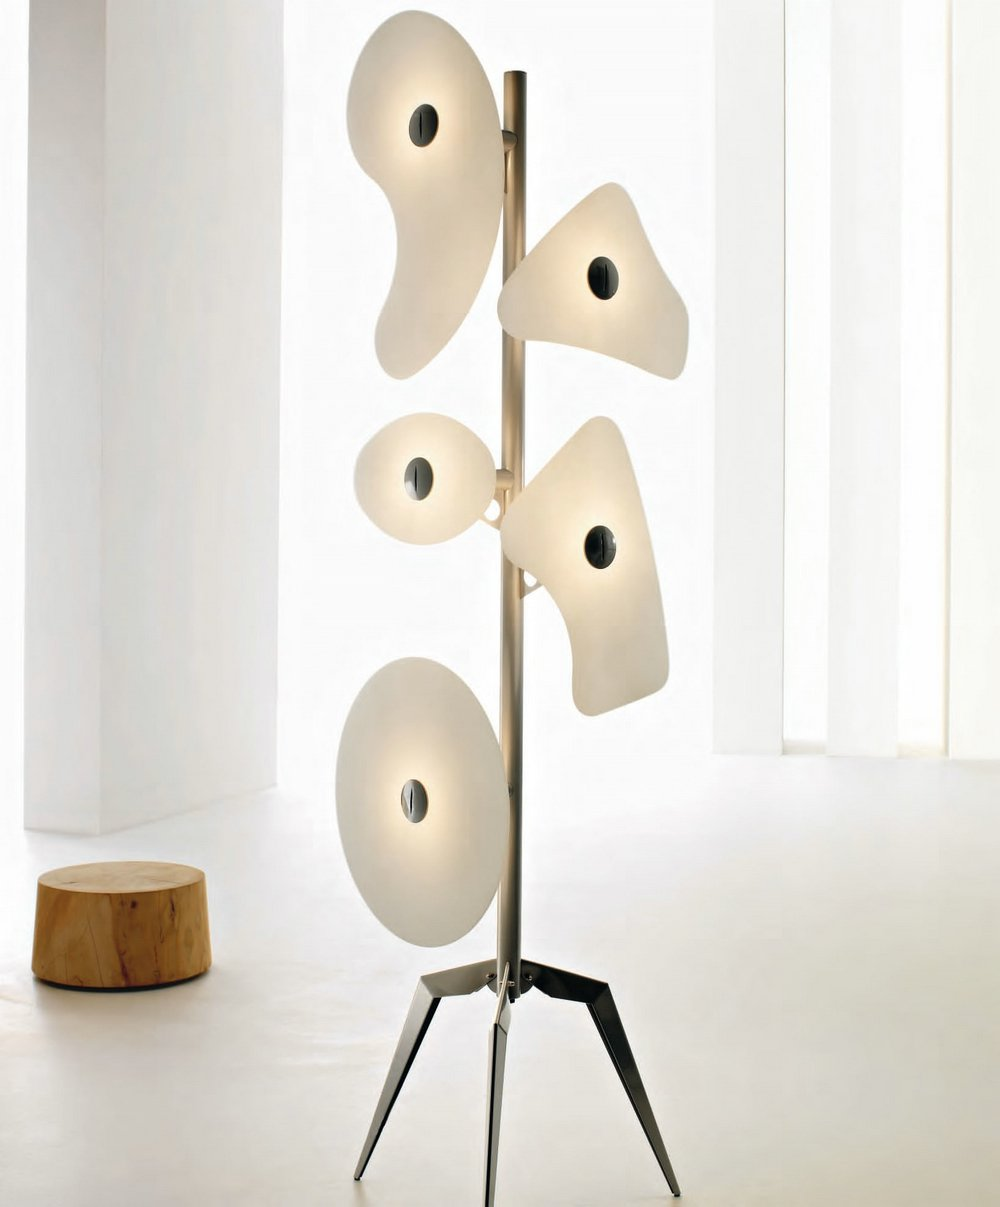 Orbital (Sólo Structure) Floor Lamp without vidrios